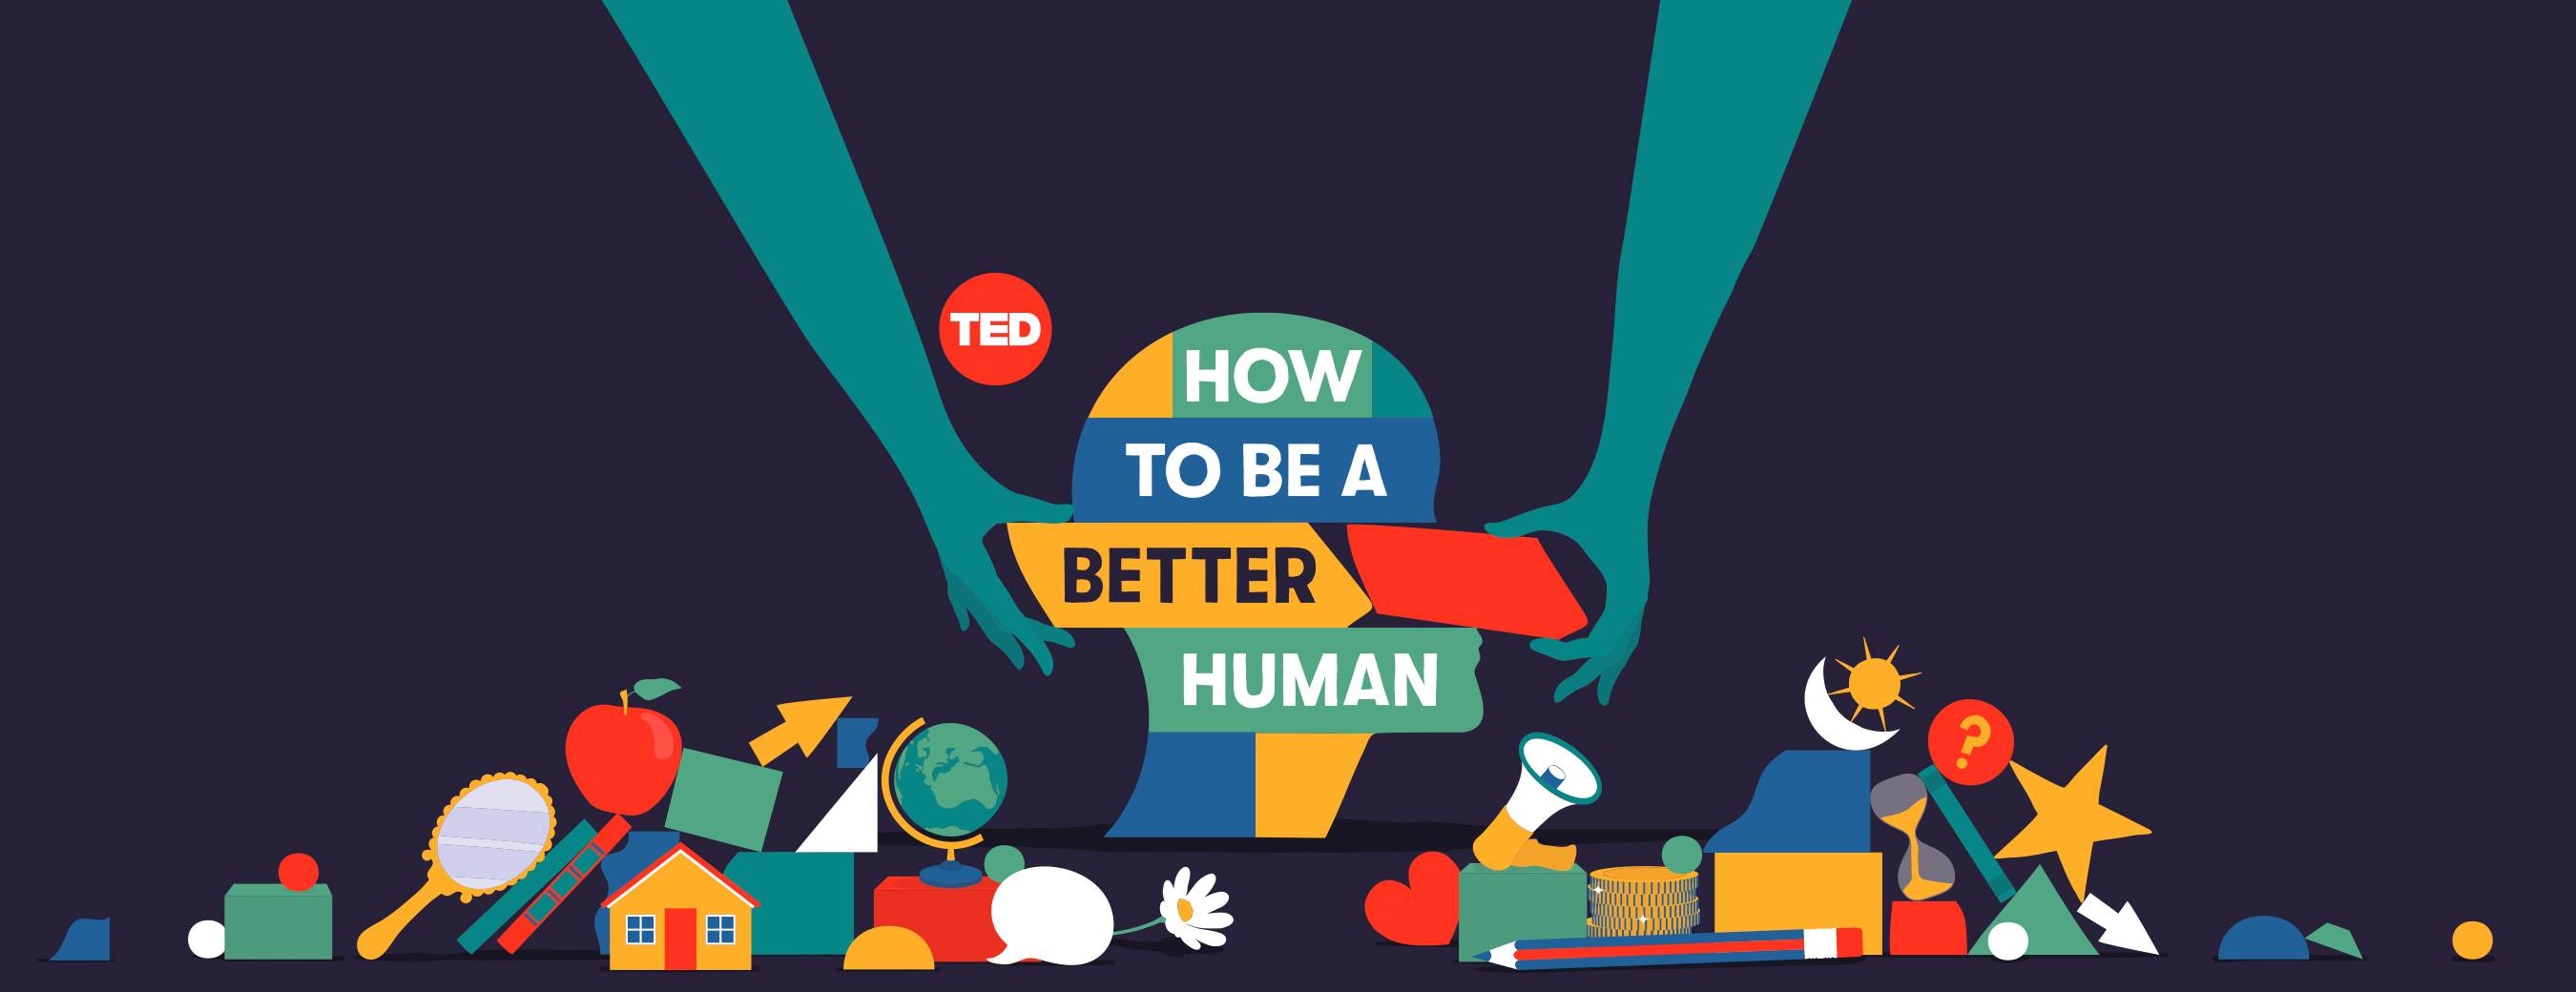 """TED launches """"How to Be a Better Human,"""" a new original podcast hosted by Chris Duffy"""